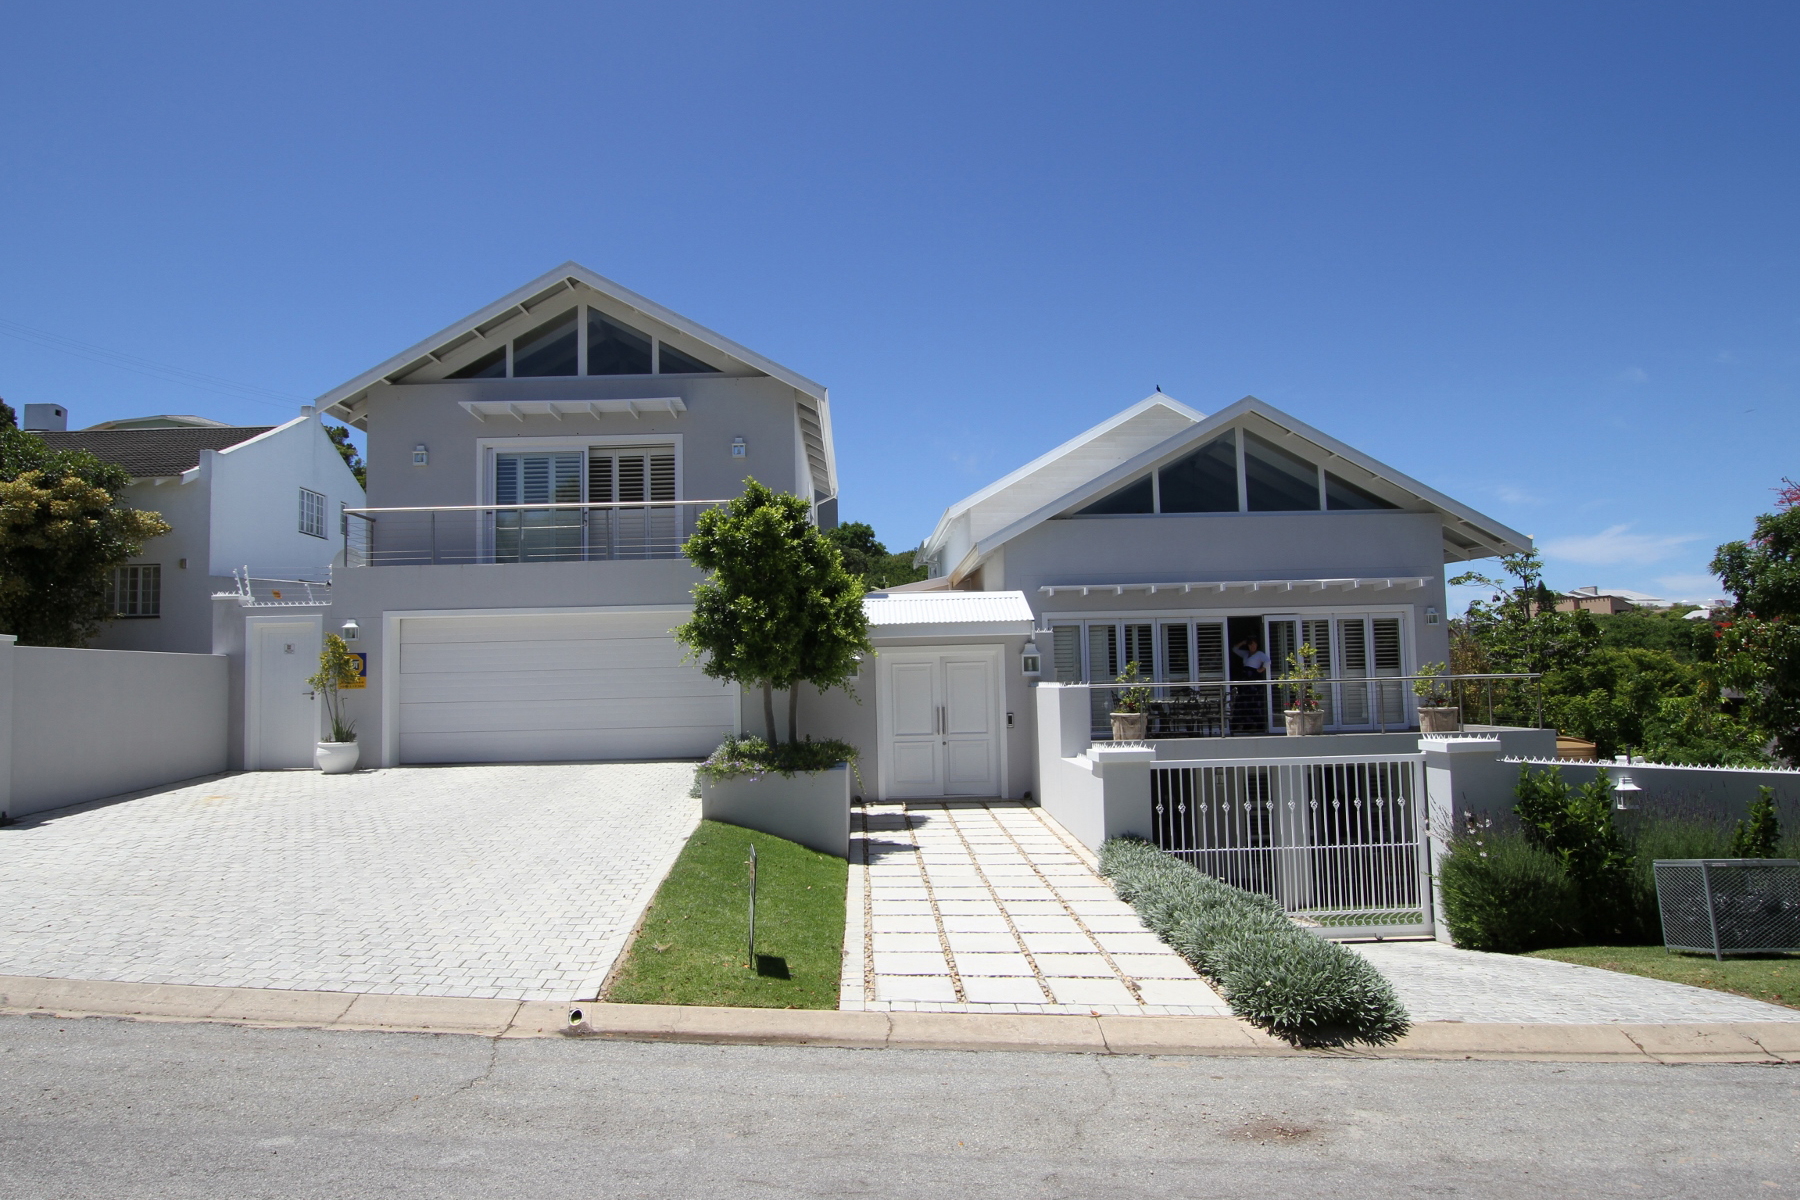 Single Family Home for Sale at Stableford Drive Plettenberg Bay, Western Cape, 6600 South Africa